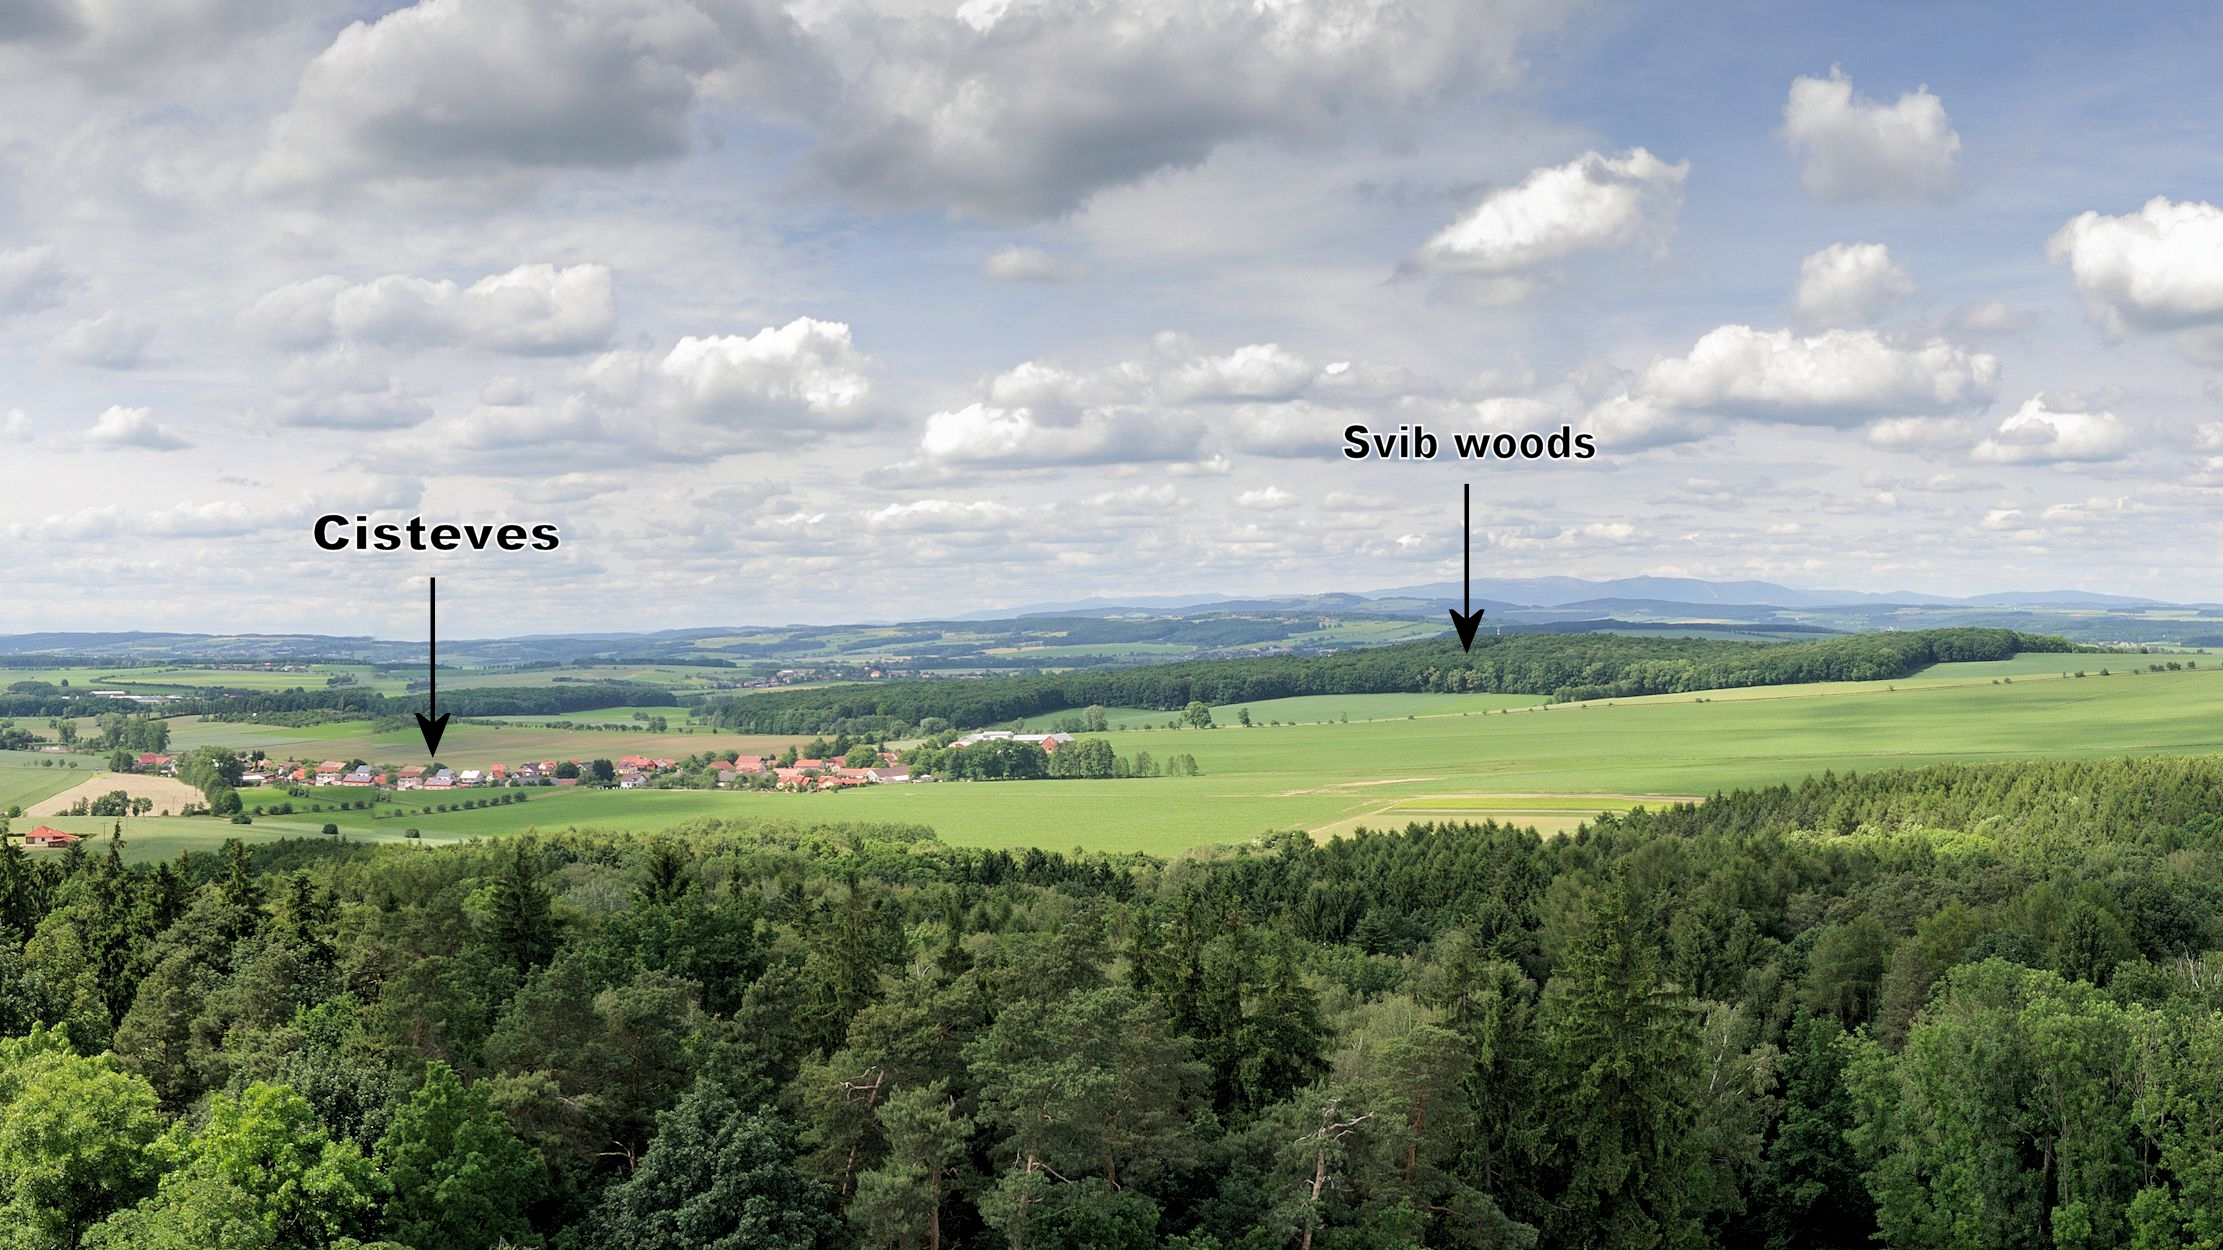 View from observation tower looking North towards Cisteves and Swipwald.